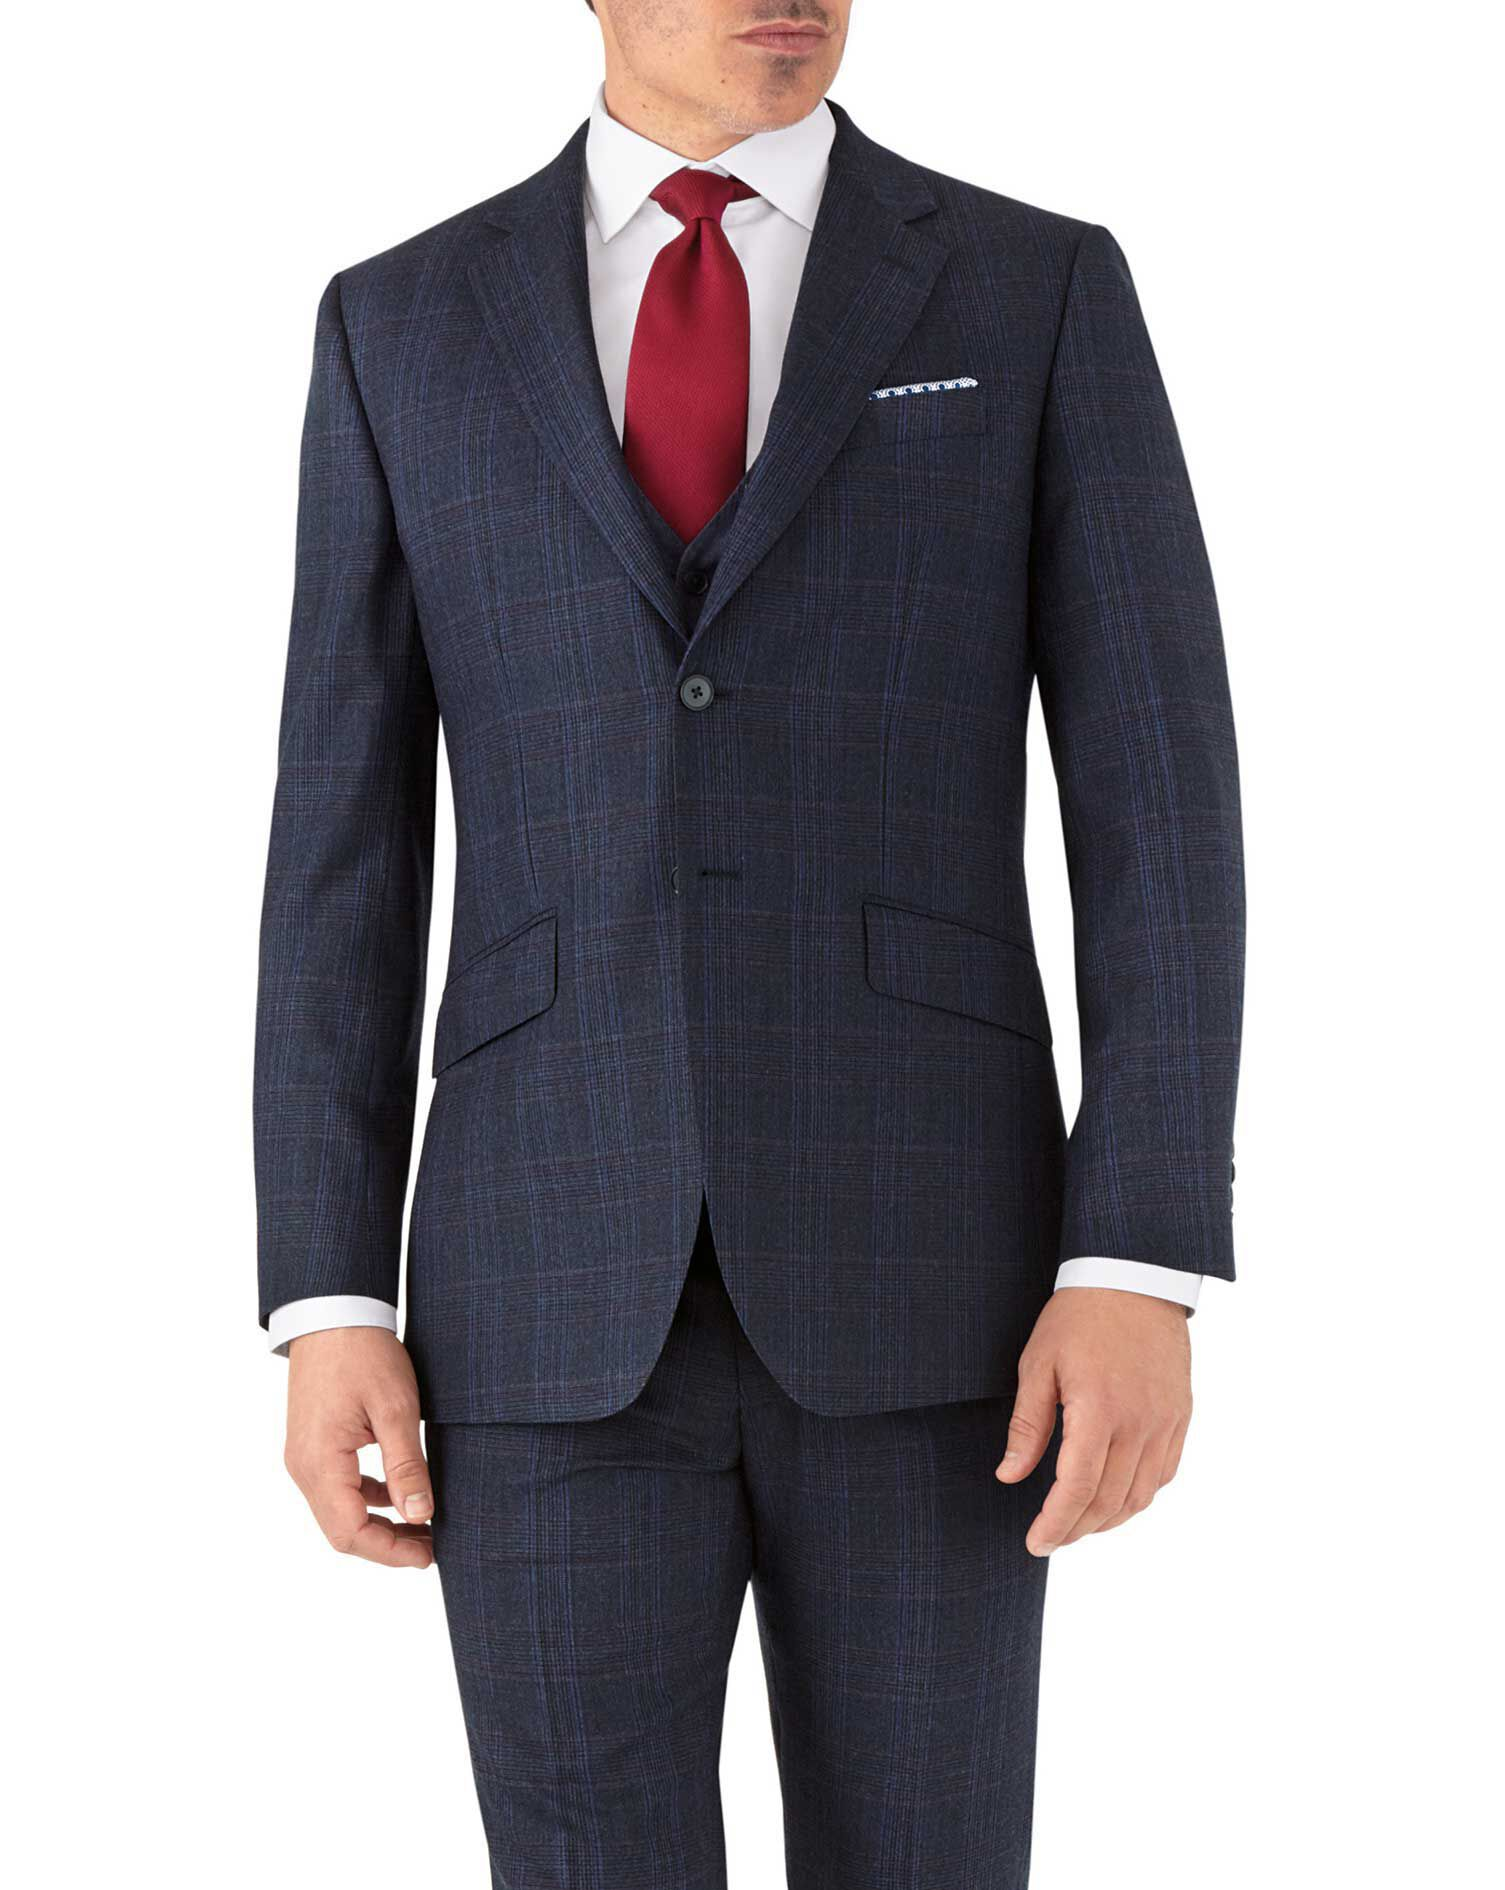 Blue Prince Of Wales Slim Fit Flannel Business Suit Wool Jacket Size 38 Long by Charles Tyrwhitt